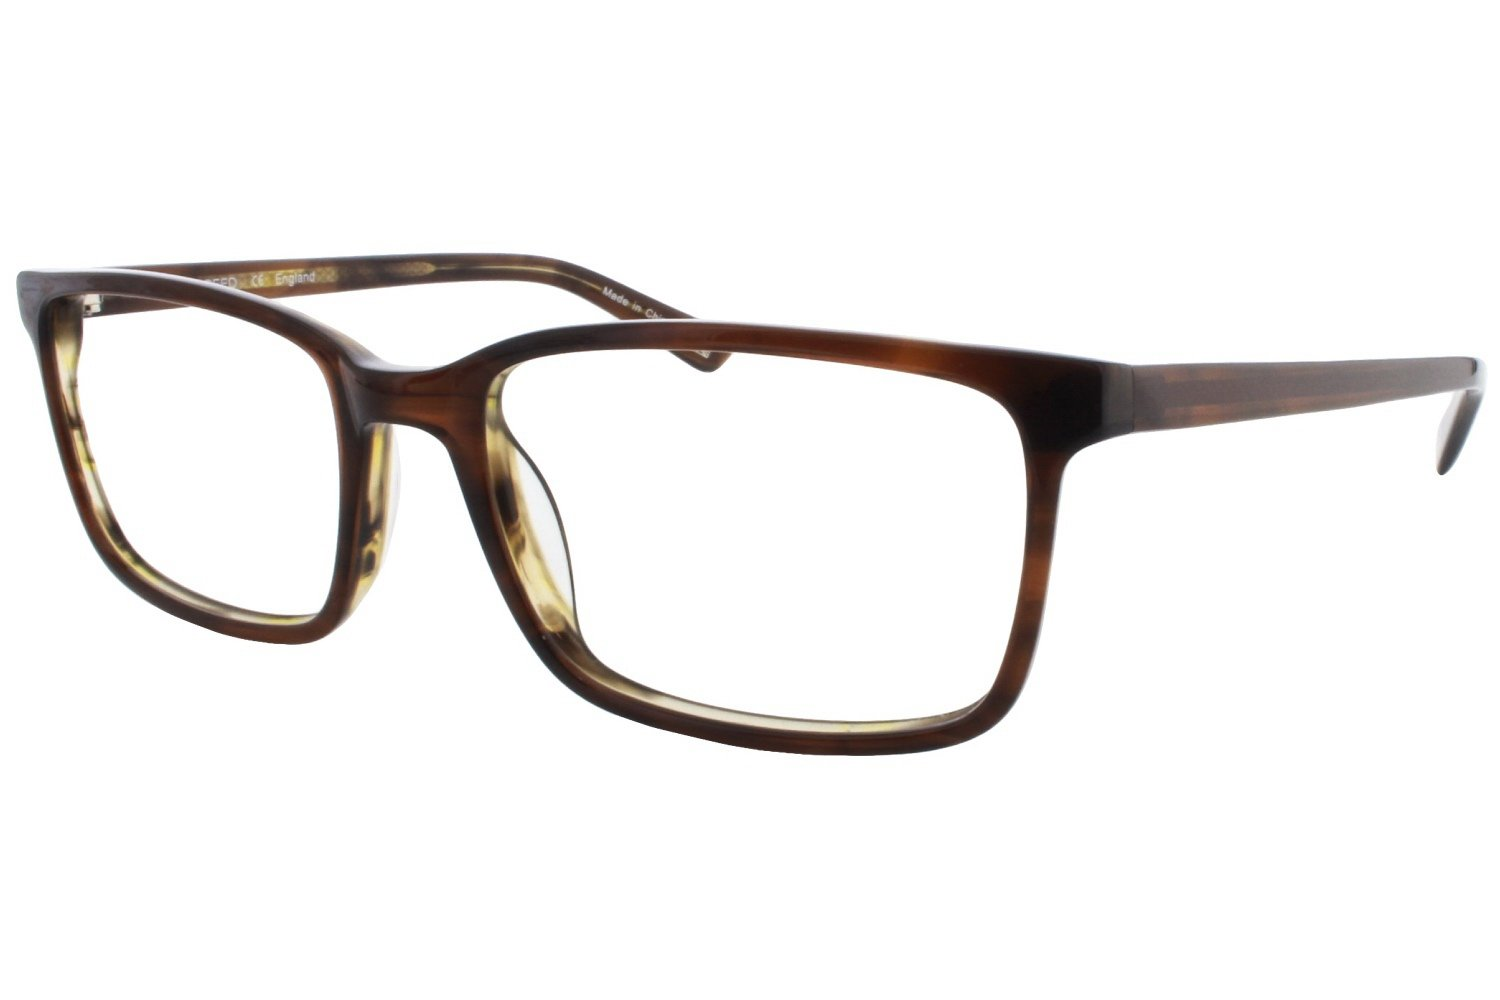 Austin Reed M02 Mens Eyeglass Frames Buy Online In Gibraltar At Gibraltar Desertcart Com Productid 175936923